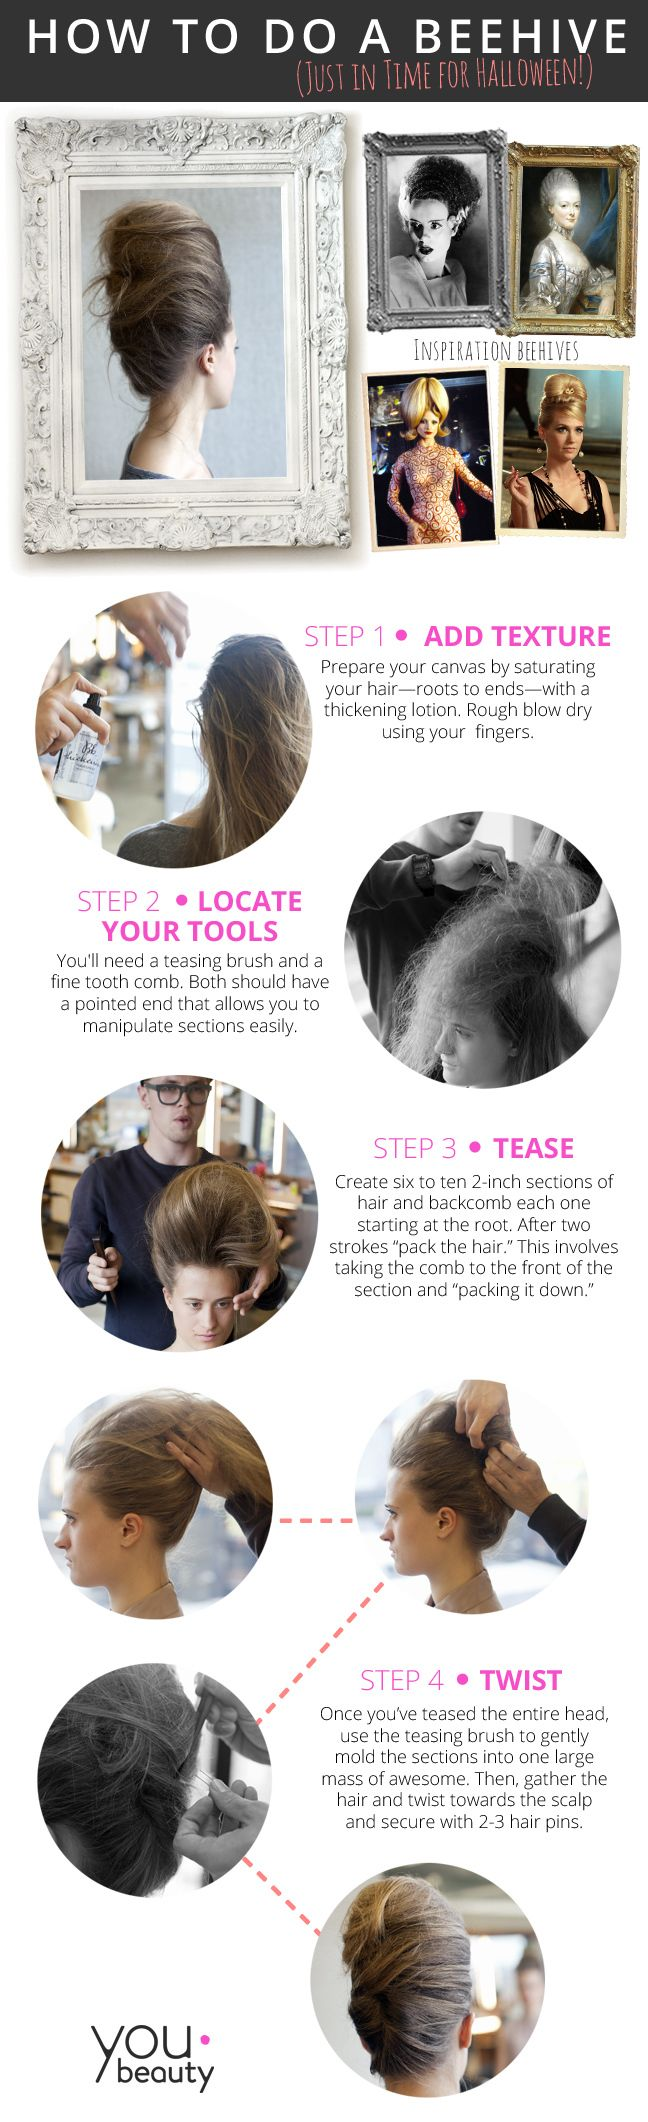 how to do a beehive for halloween - youbeauty | hair